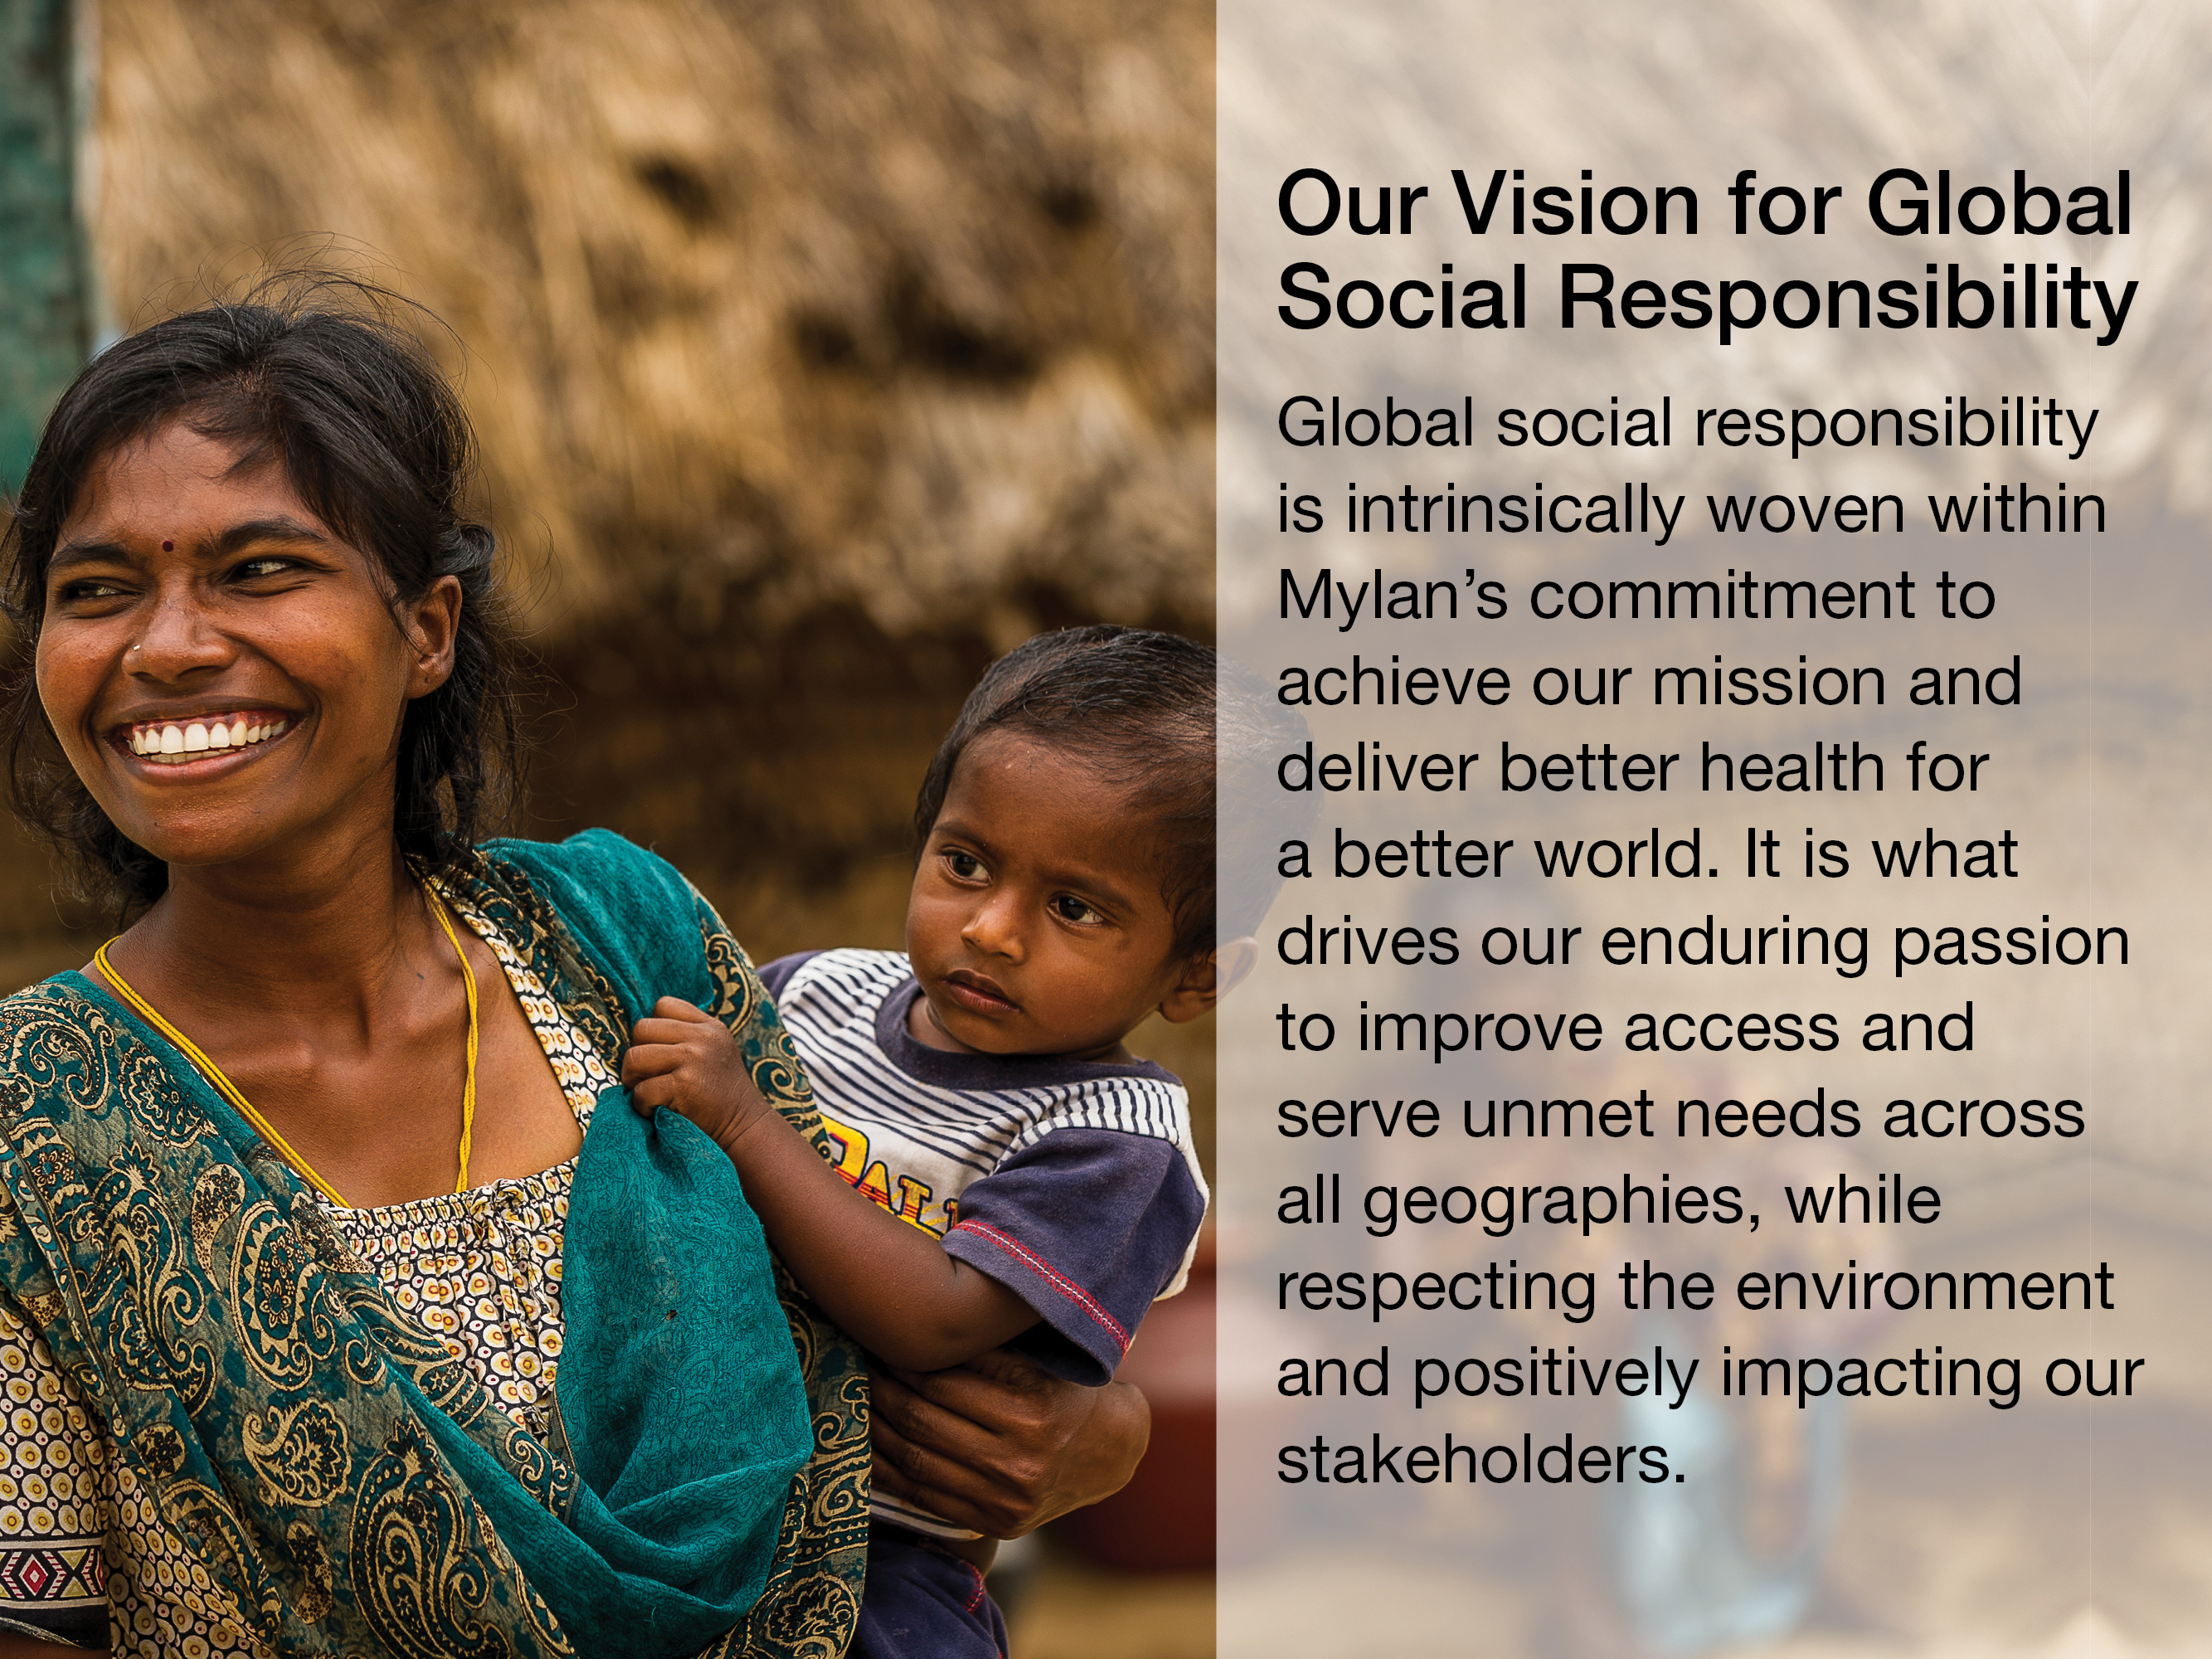 Our Vision for Global Social Responsibility